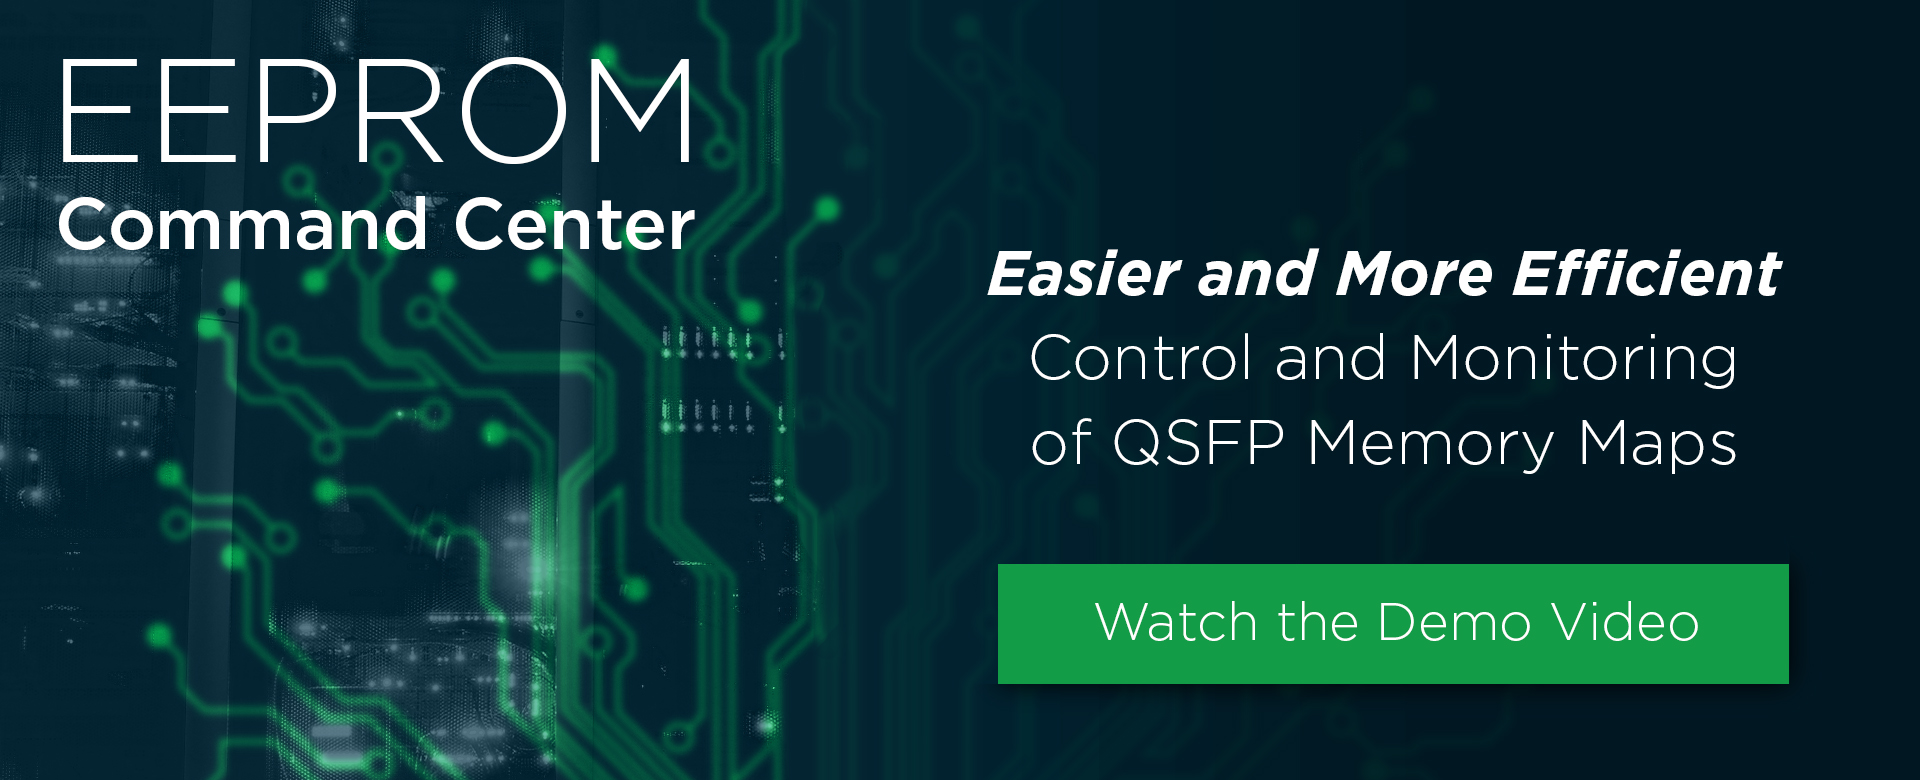 EEPROM Command Center monitors and controls QSFP memory maps